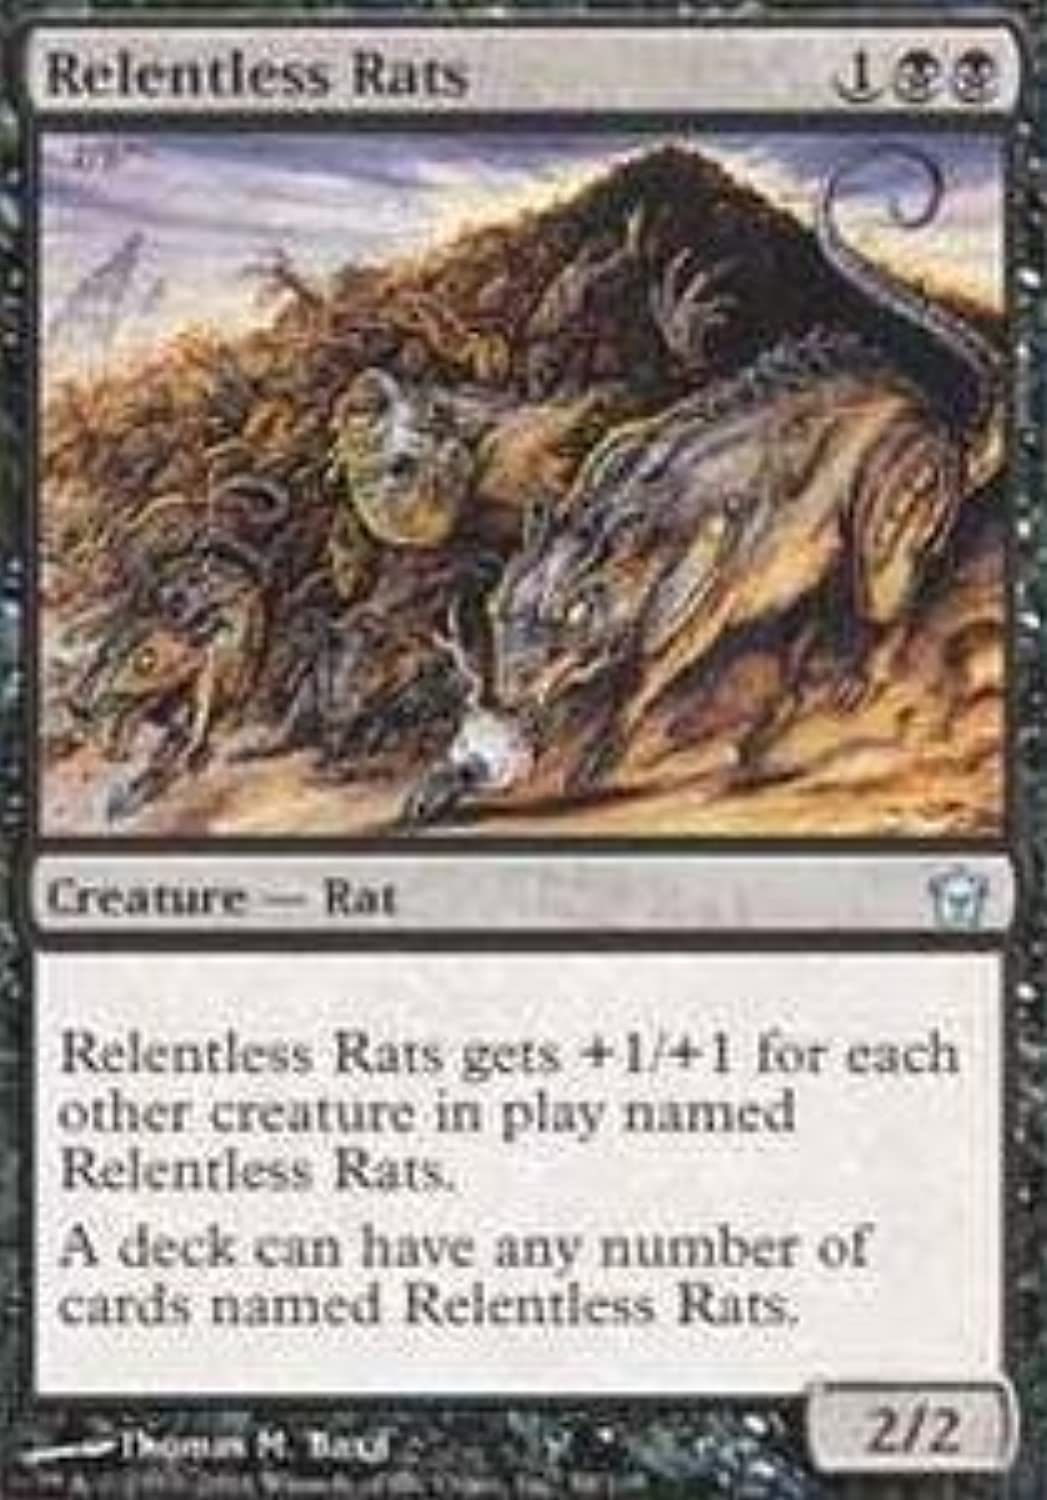 Magic  the Gathering - Relentless Rats - Fifth Dawn - Foil by Magic  the Gathering B01GDO8STG Schön  | Feinbearbeitung